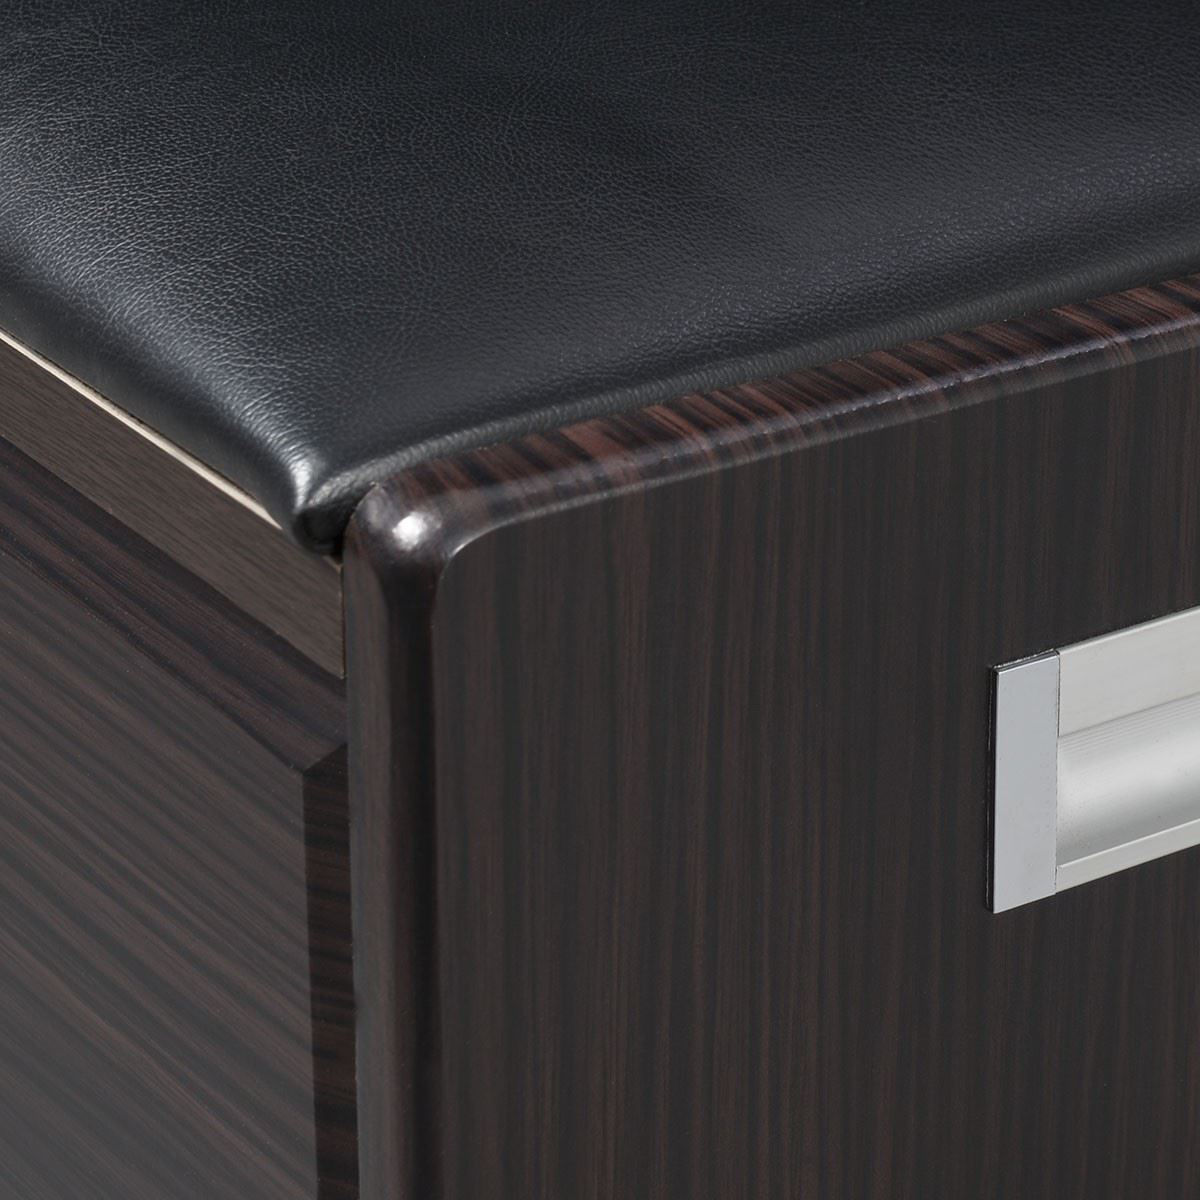 Picture of Shoe Storage Bench Wood